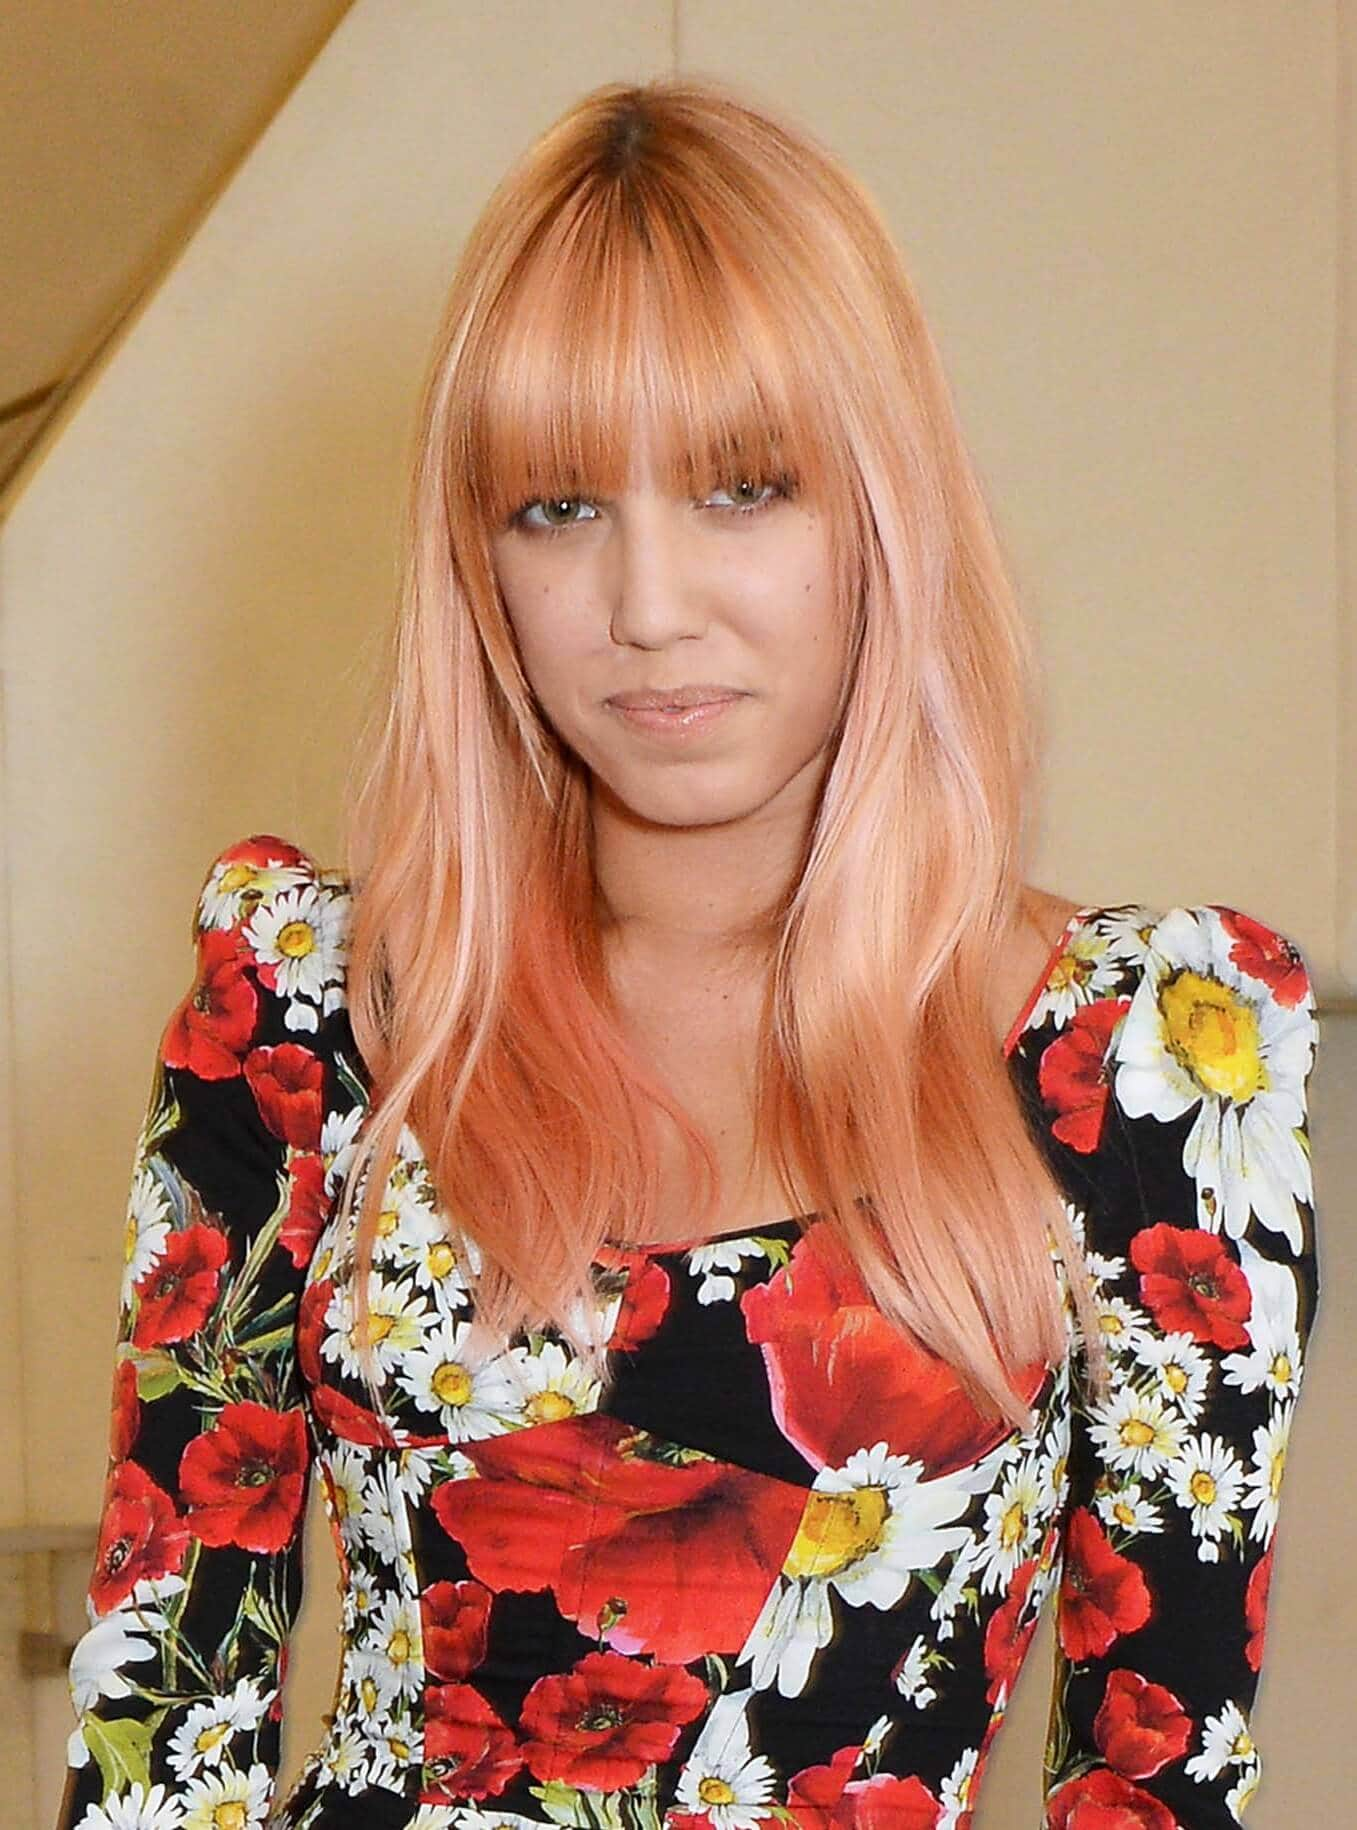 close up shot of amber le bon with pink hair and blunt feathery bangs, wearing floral dress and posing backstage